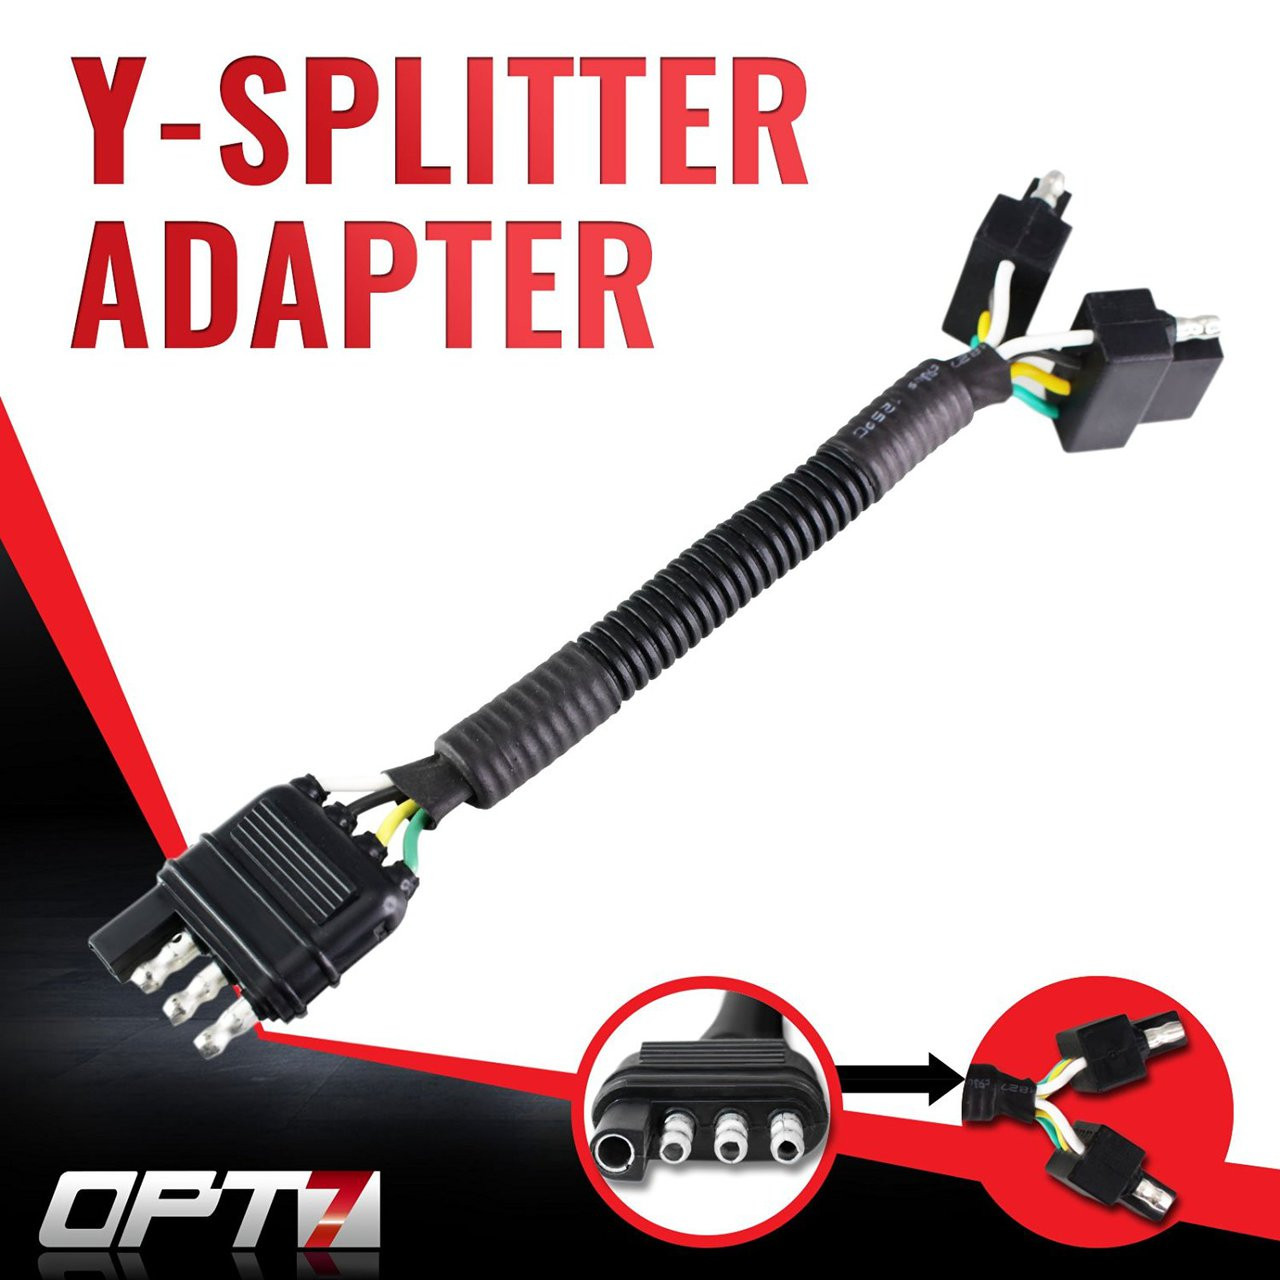 y splitter 4 tow pin connector adapter harness wiring for truck tailgate opt7 [ 1280 x 1280 Pixel ]